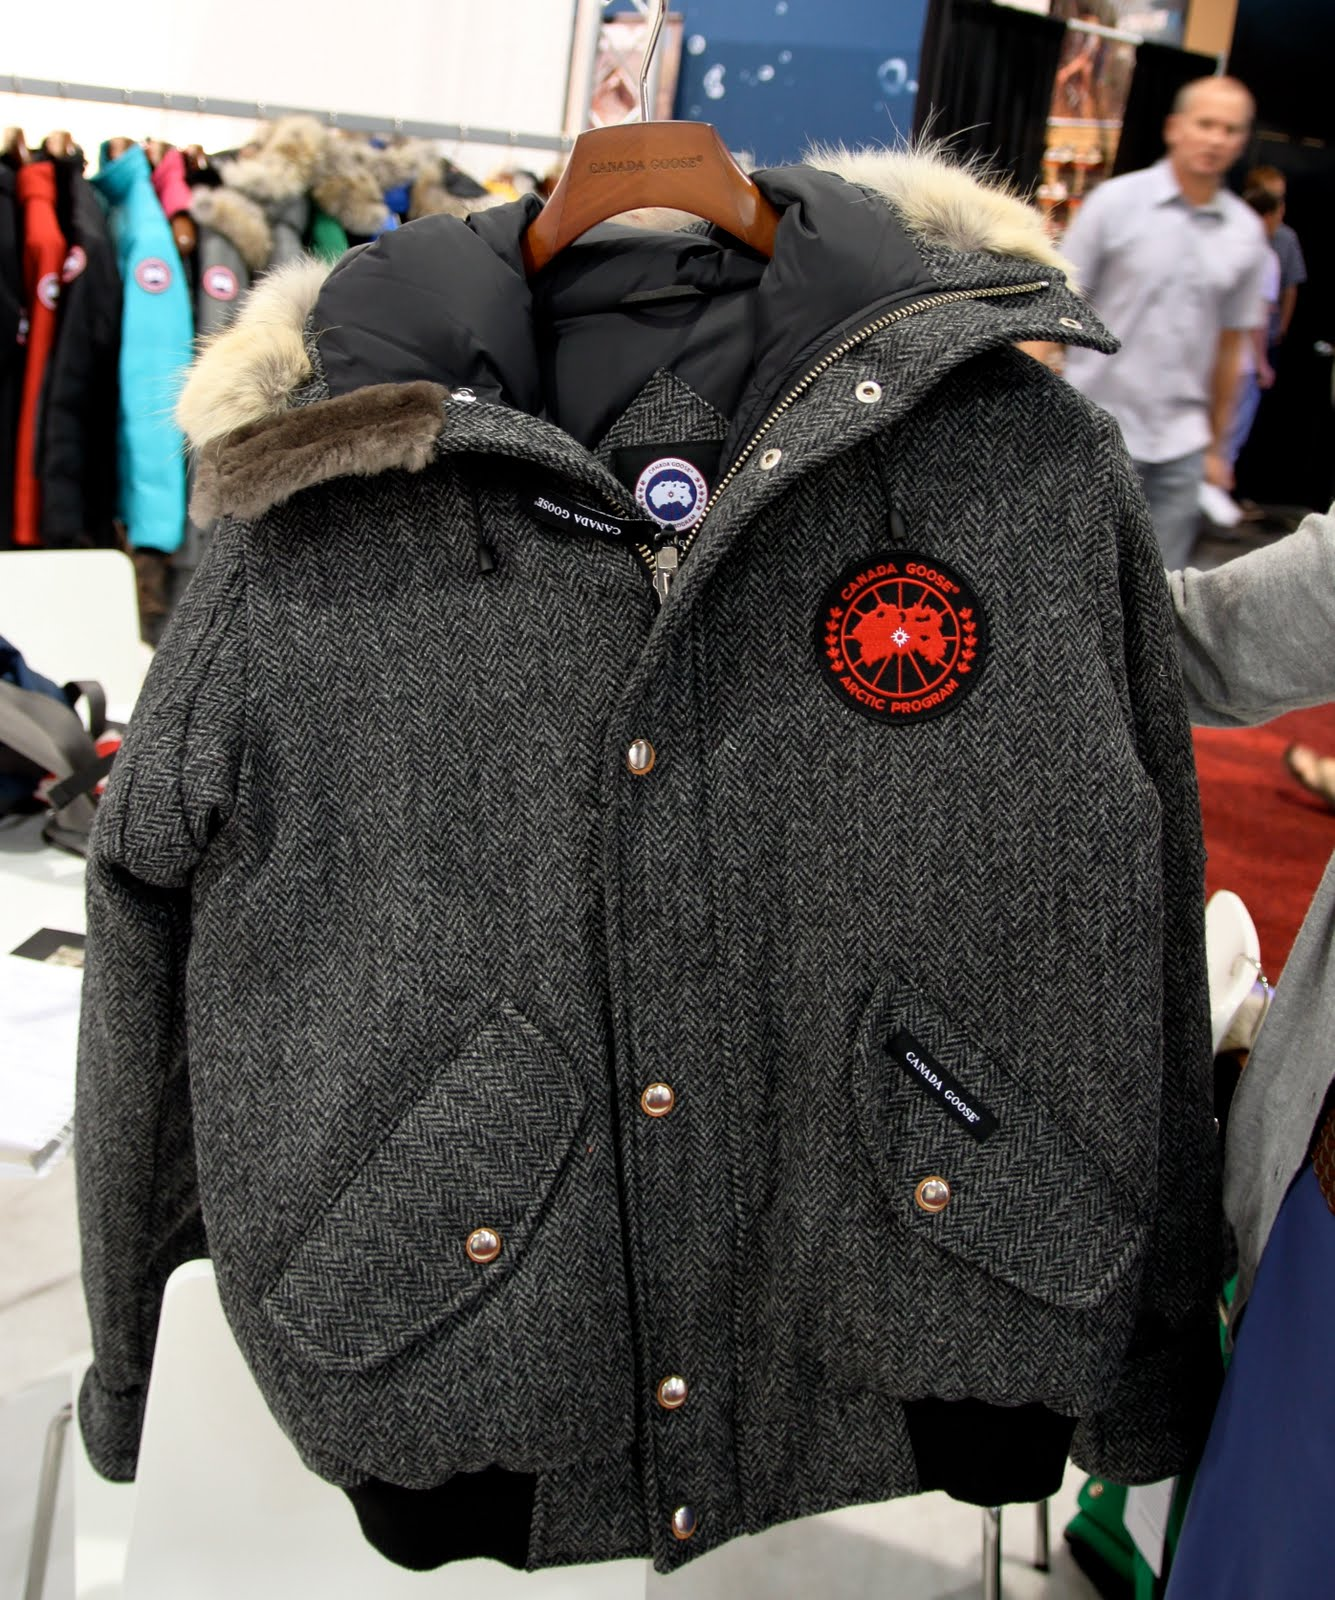 Canada Goose trillium parka sale official - LYRA MAG.: CANADA GOOSE LUXURY OUTERWEAR Men's & Women's 2010/2011